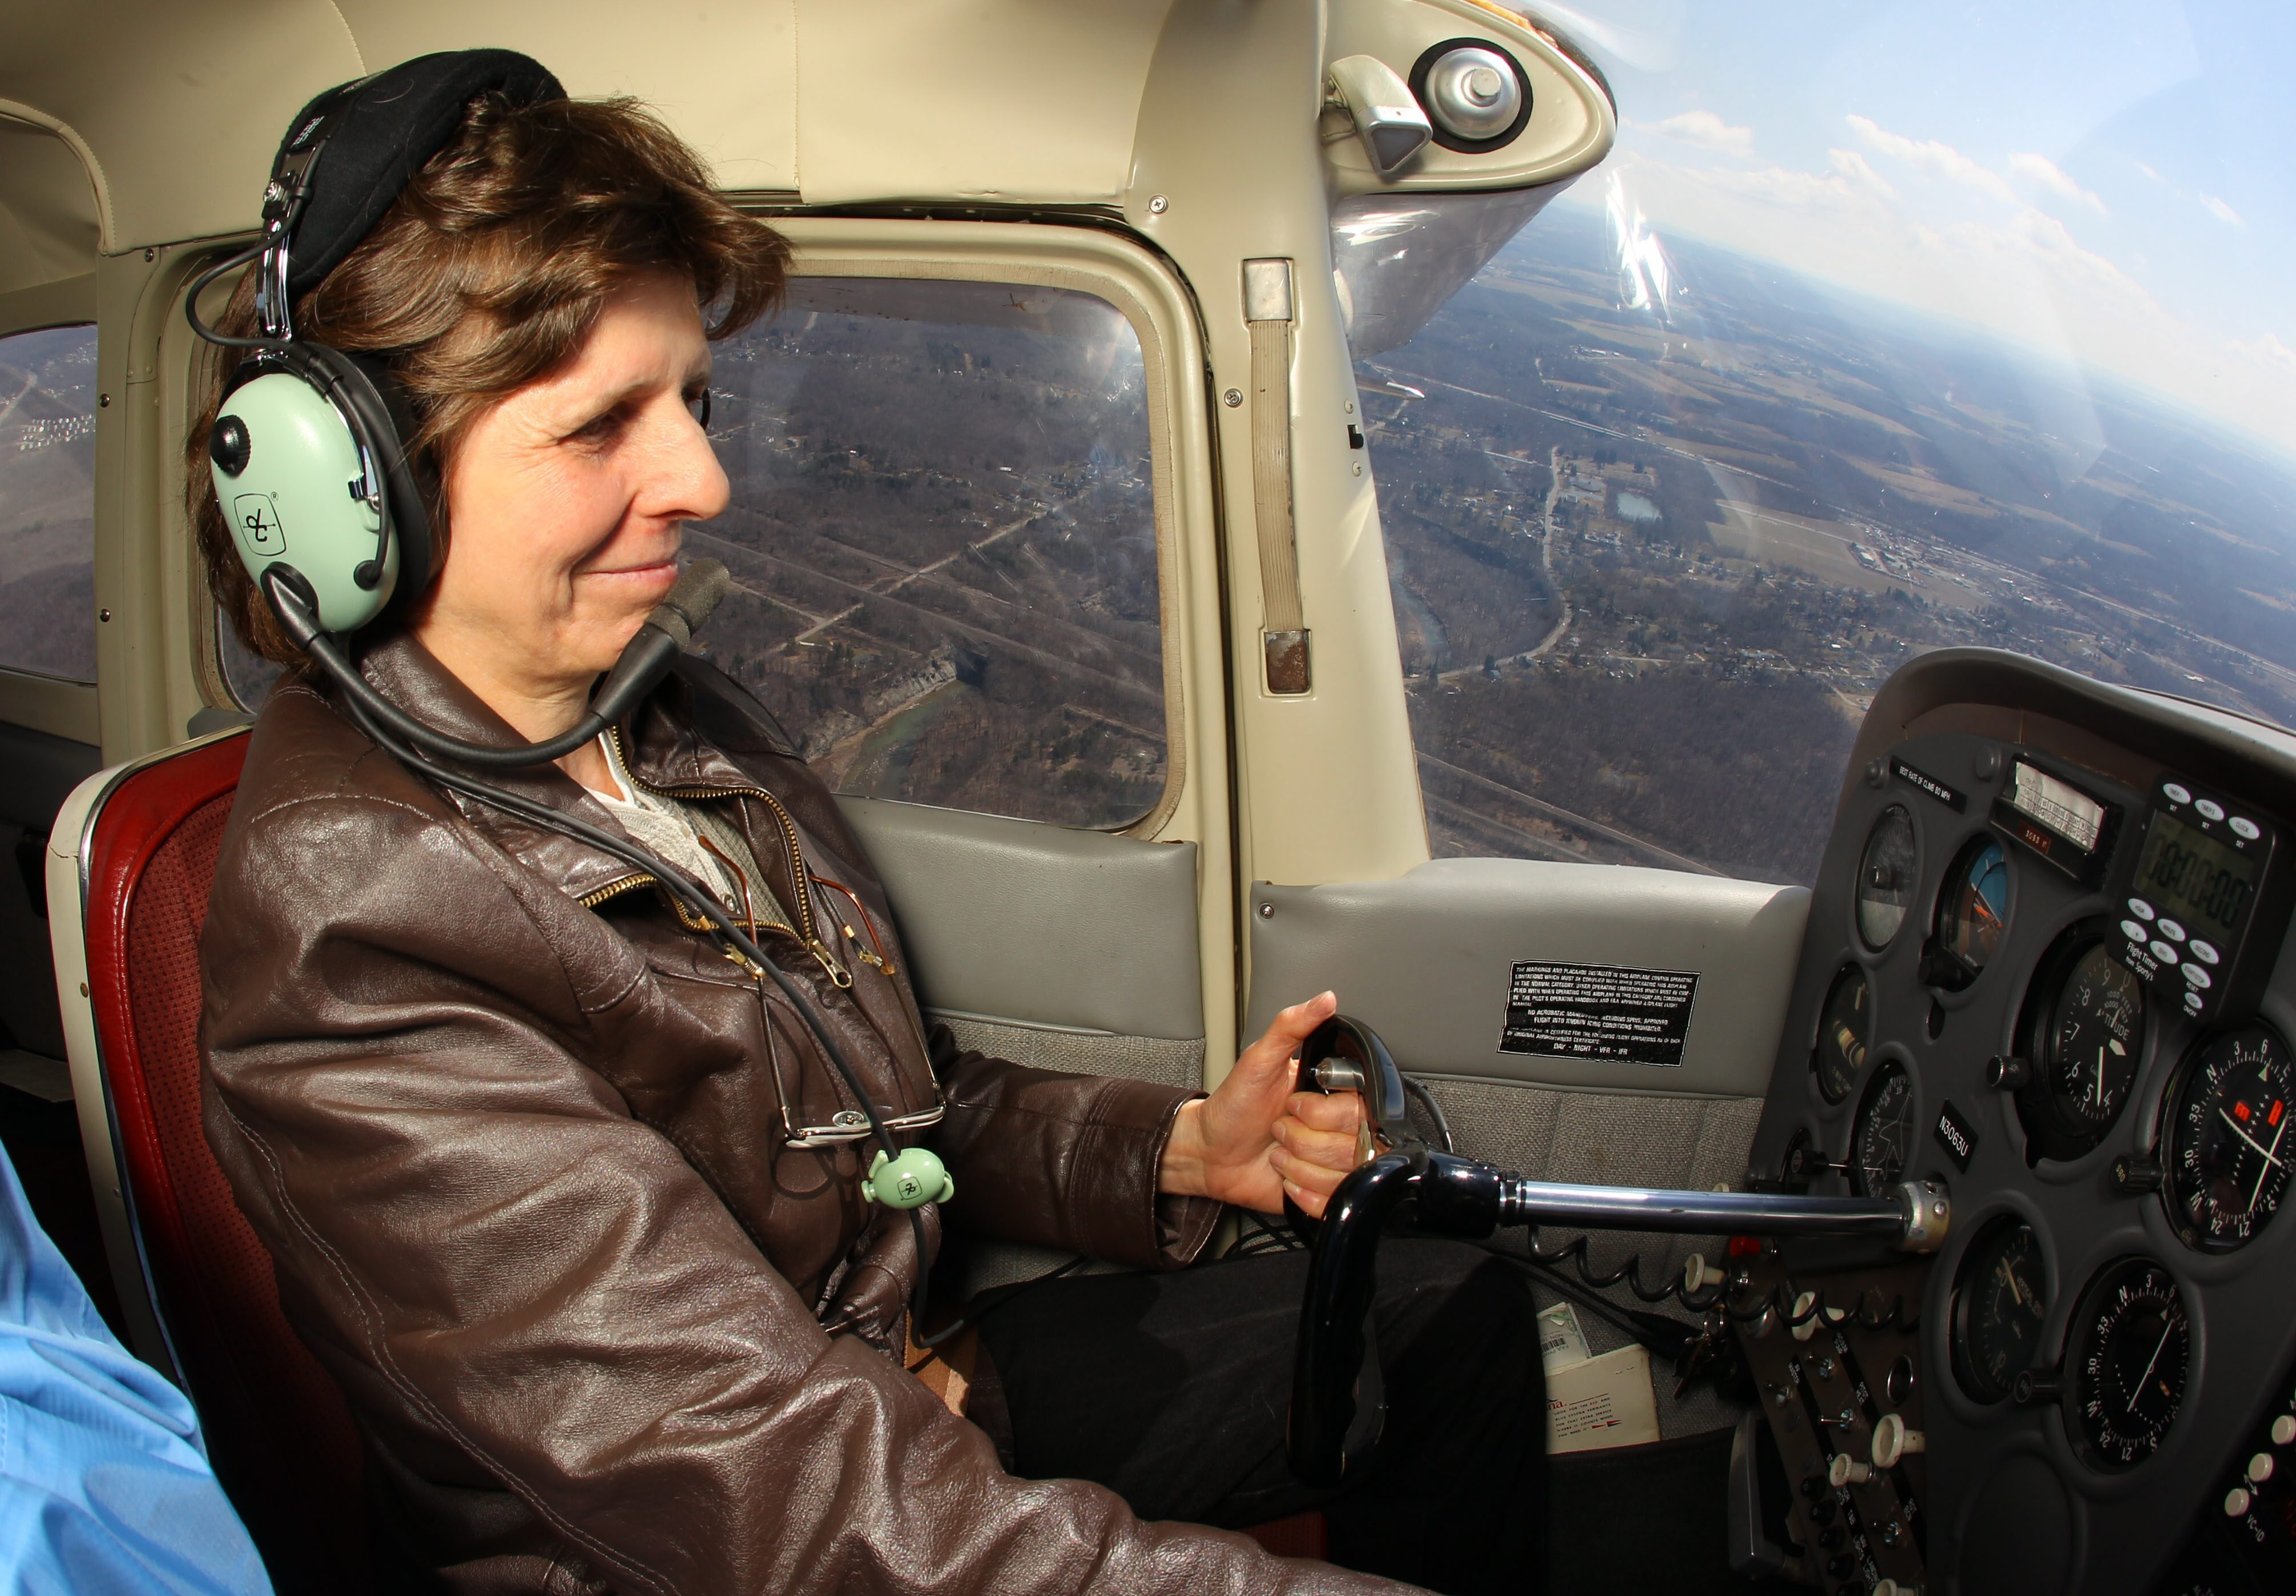 Claudia Childs began Little Bird Airways after retiring from Buffalo Police Department and buying a plane.